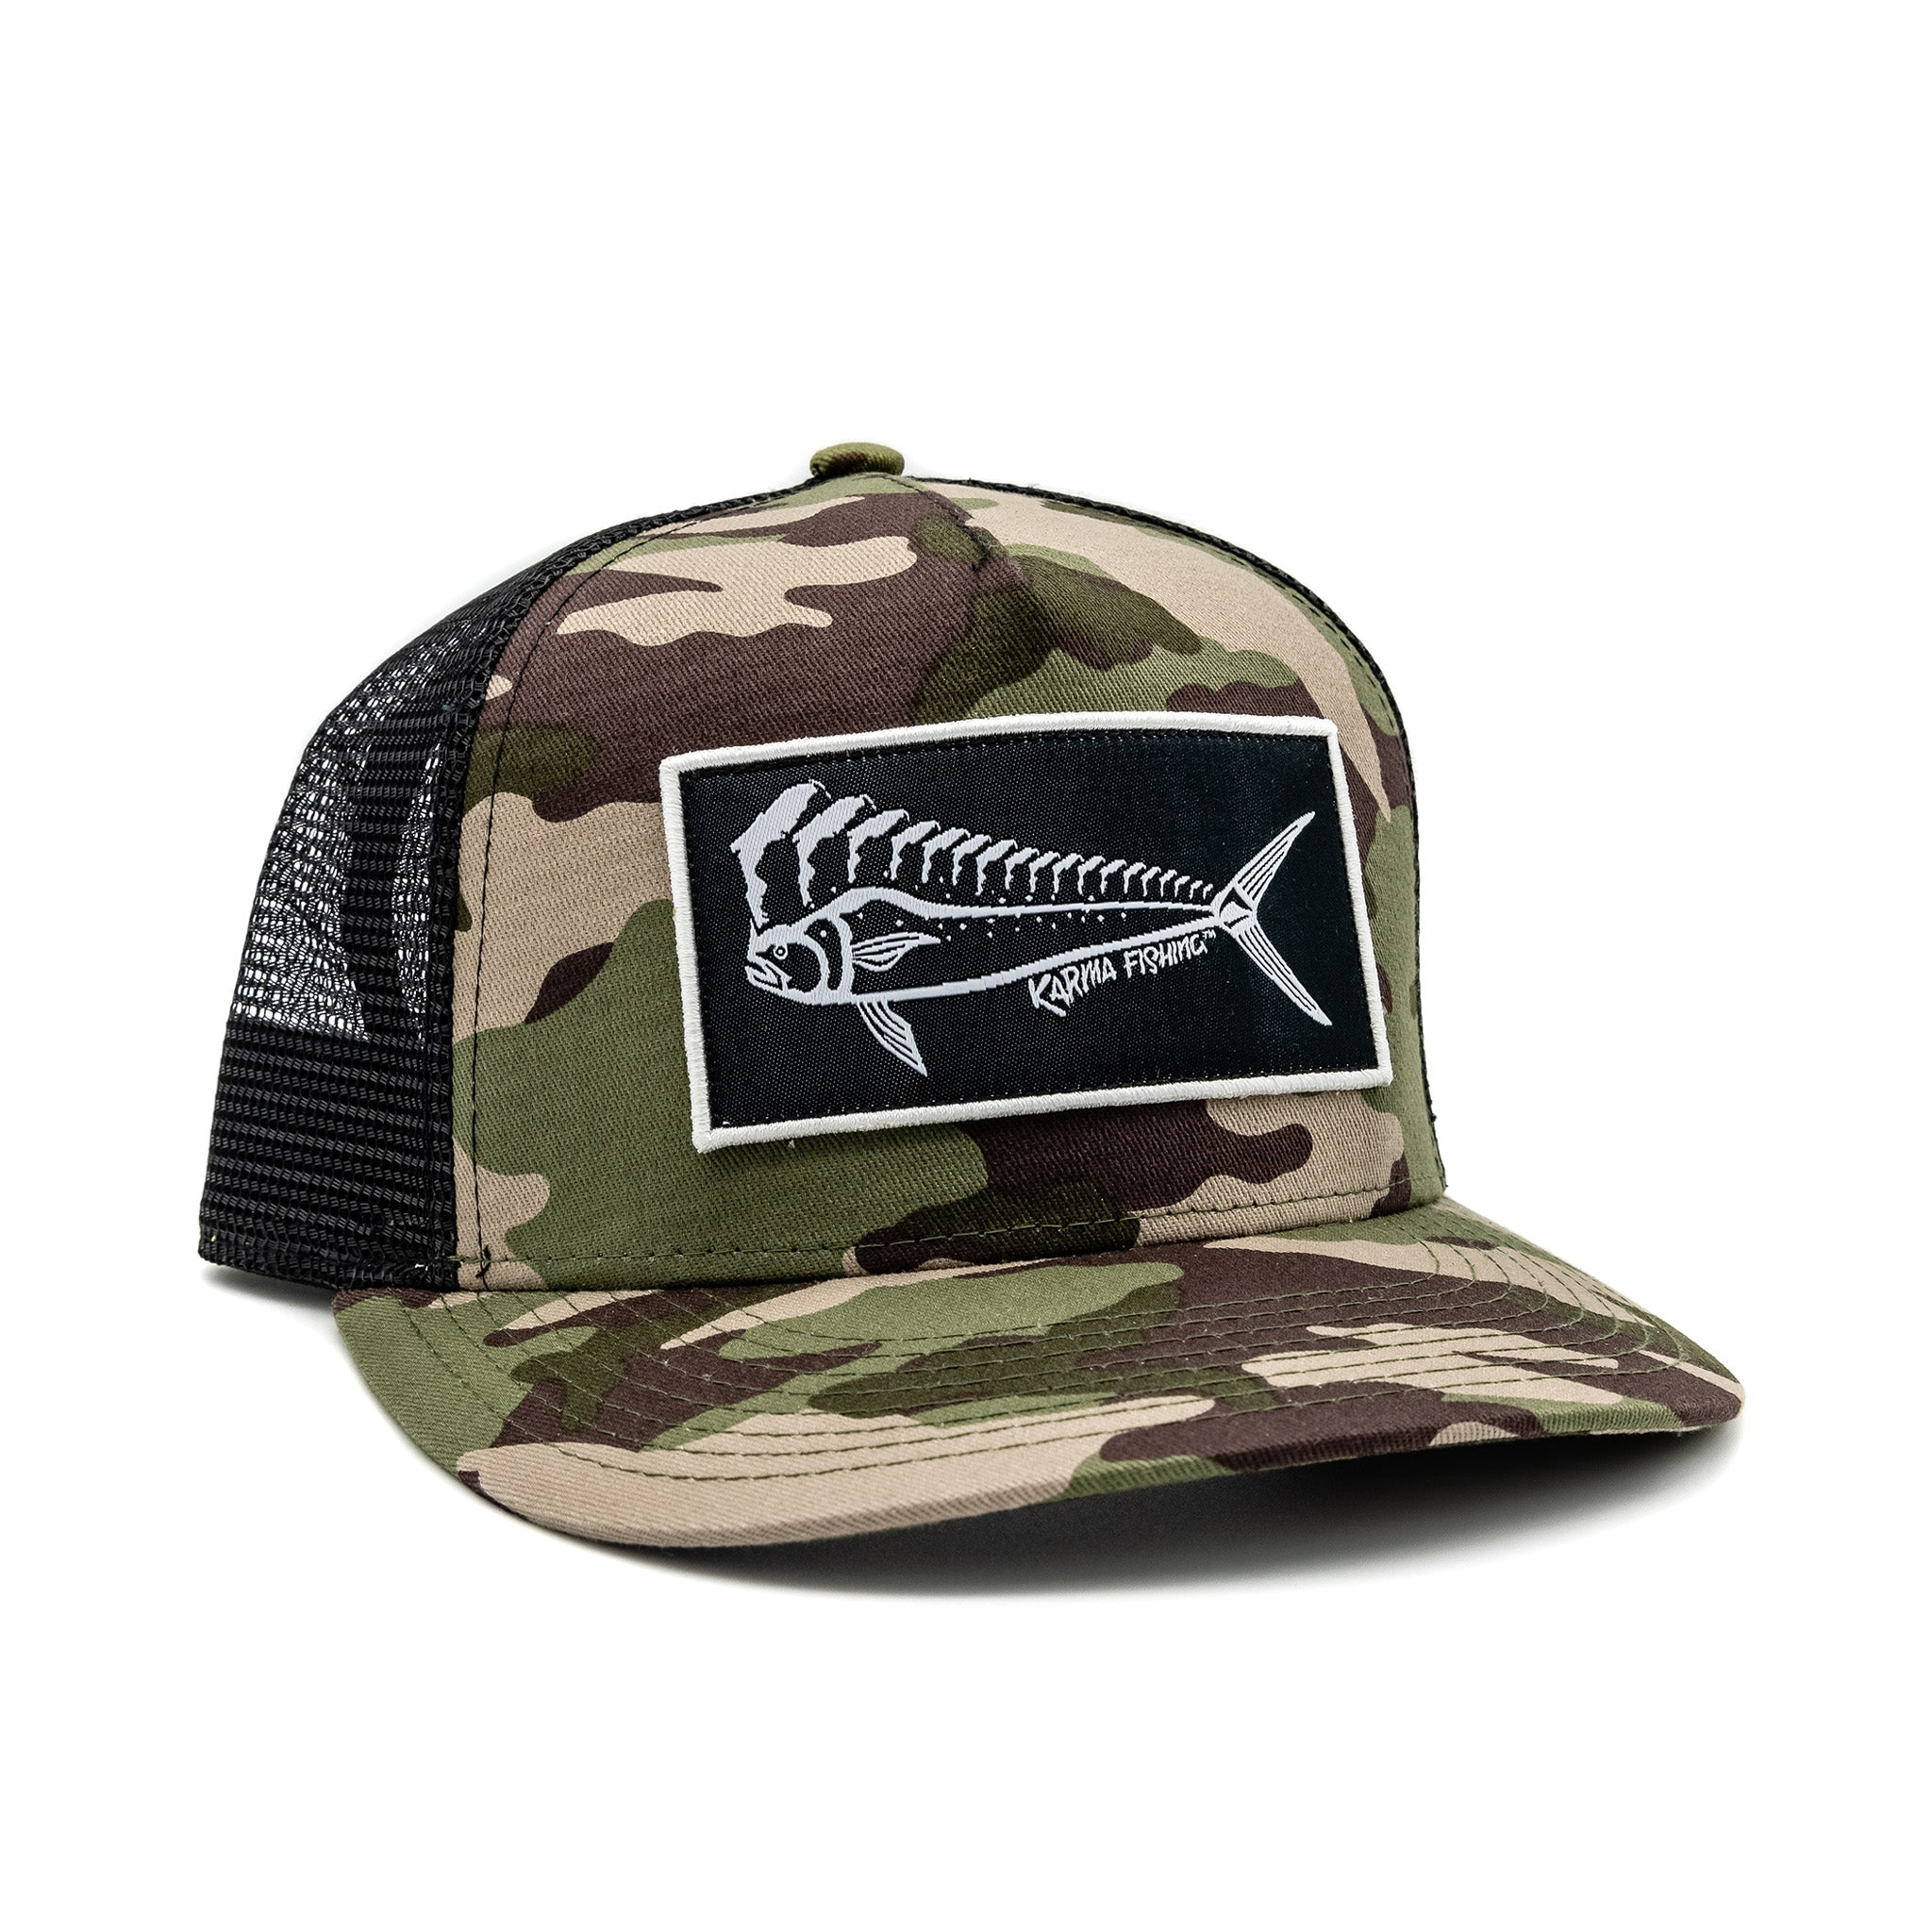 Florida Mahi Ultimate Trucker, Camo/Black